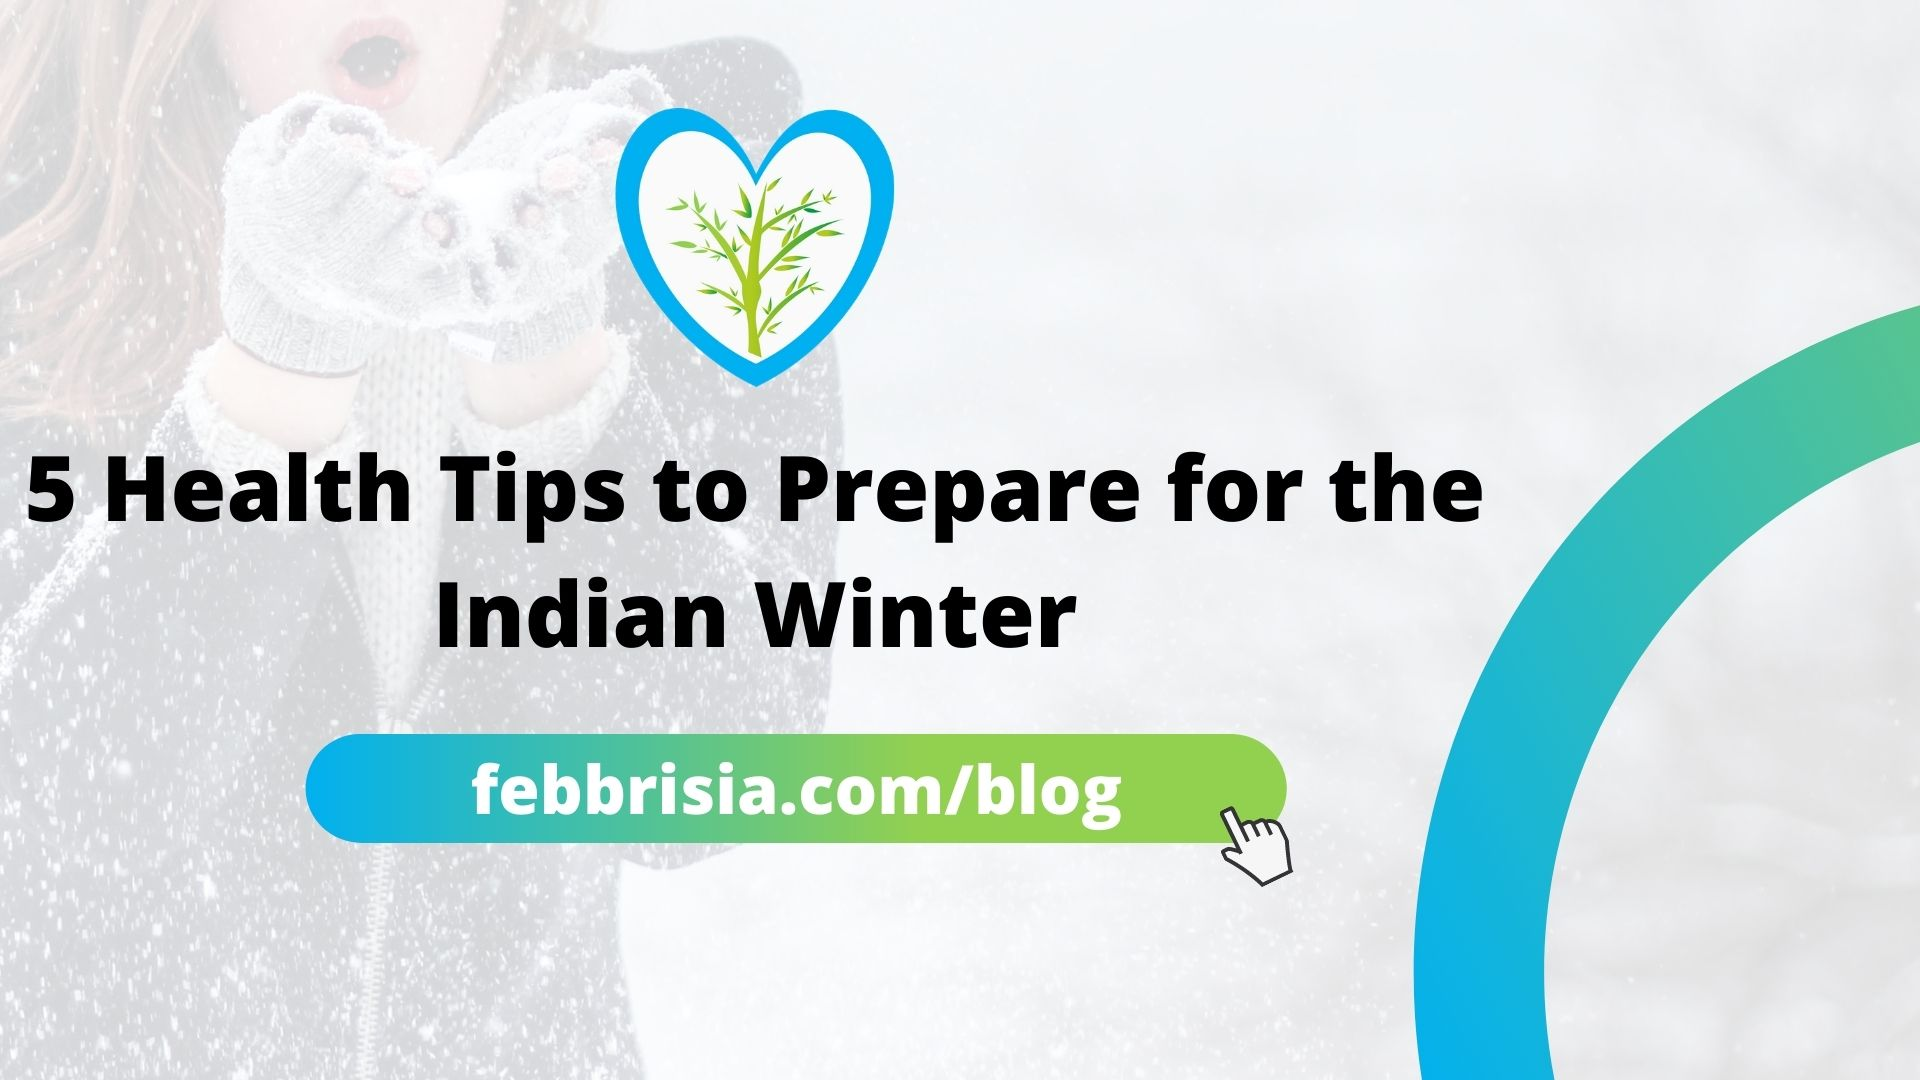 5 Health Tips to Prepare for the Indian Winter